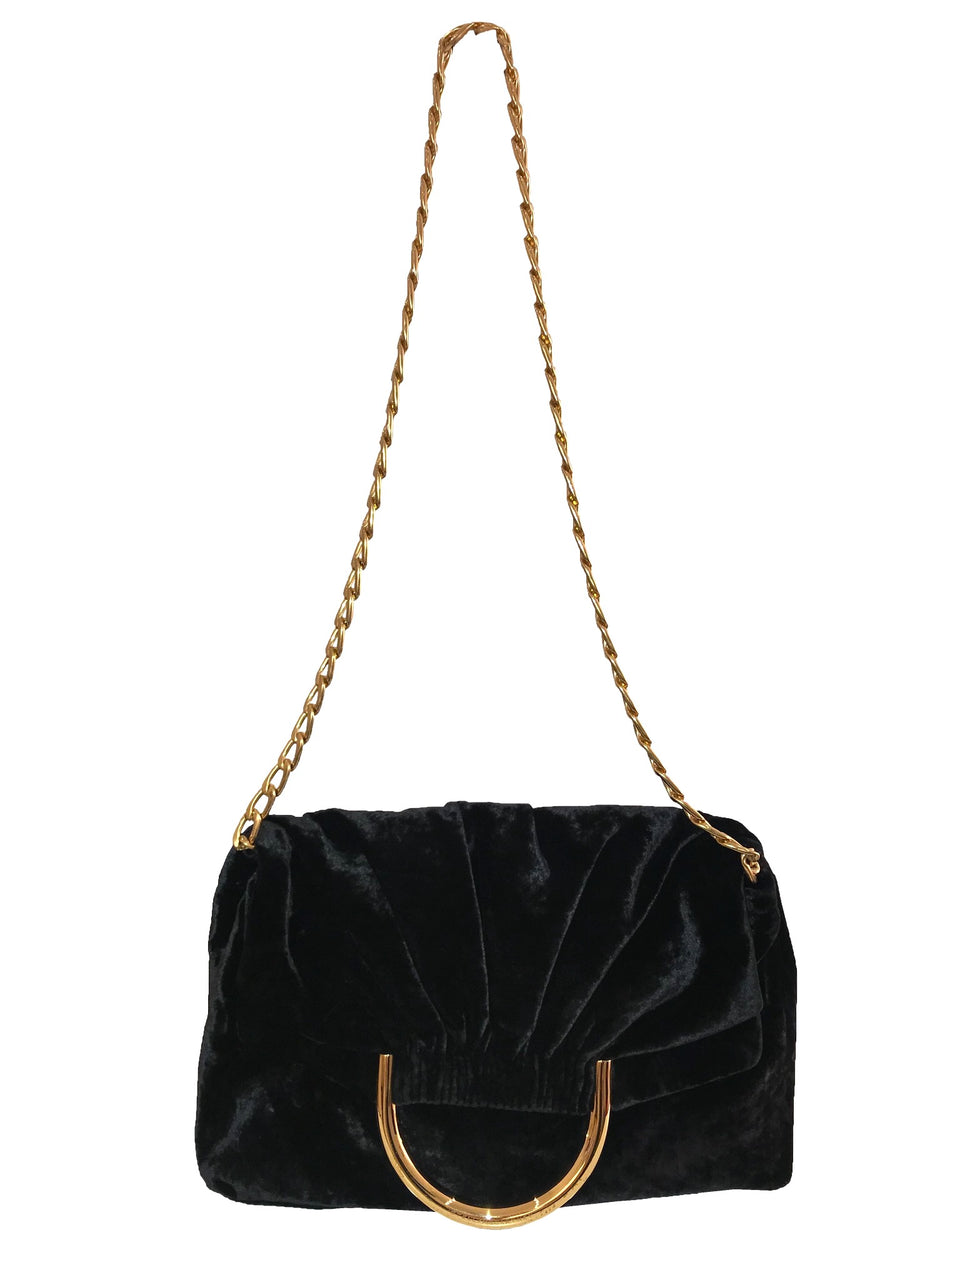 Stella McCartney Grey Velvet Bag w/ Gold Chain